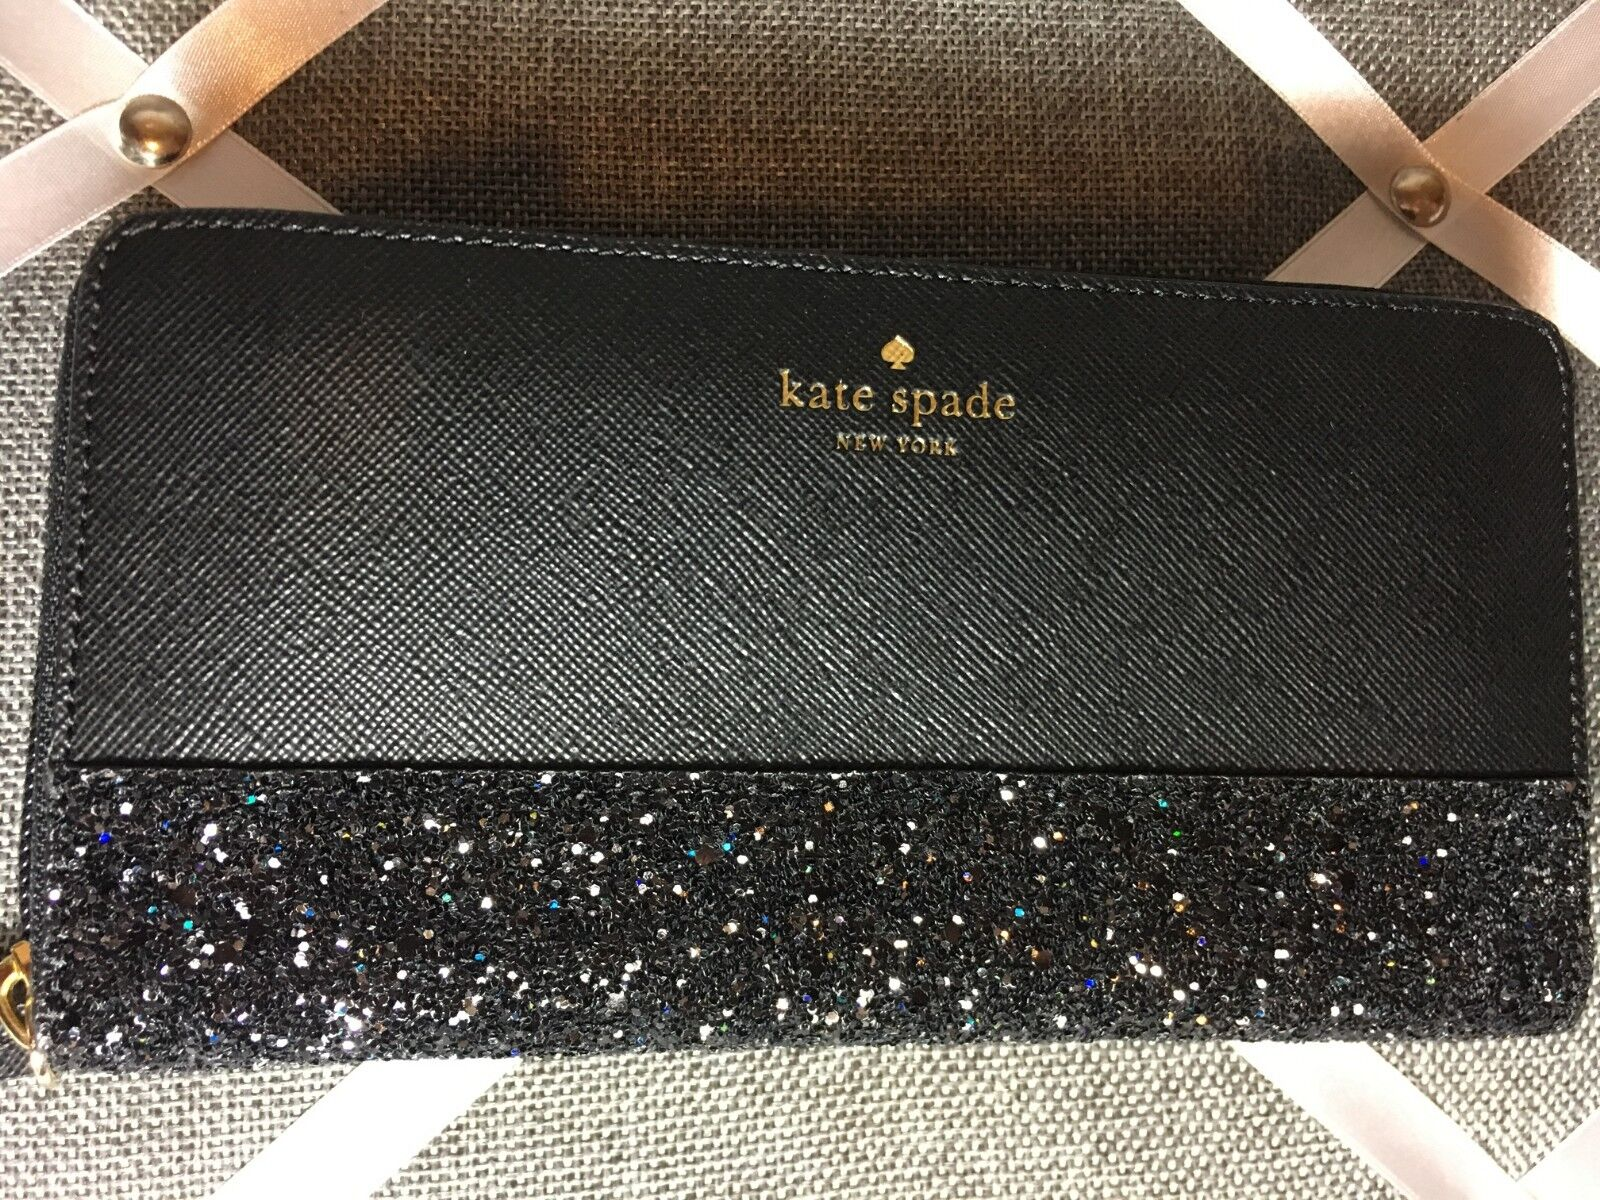 NWT Authentic KATE SPADE neda zip around wallet greta court All That Glitter Blk